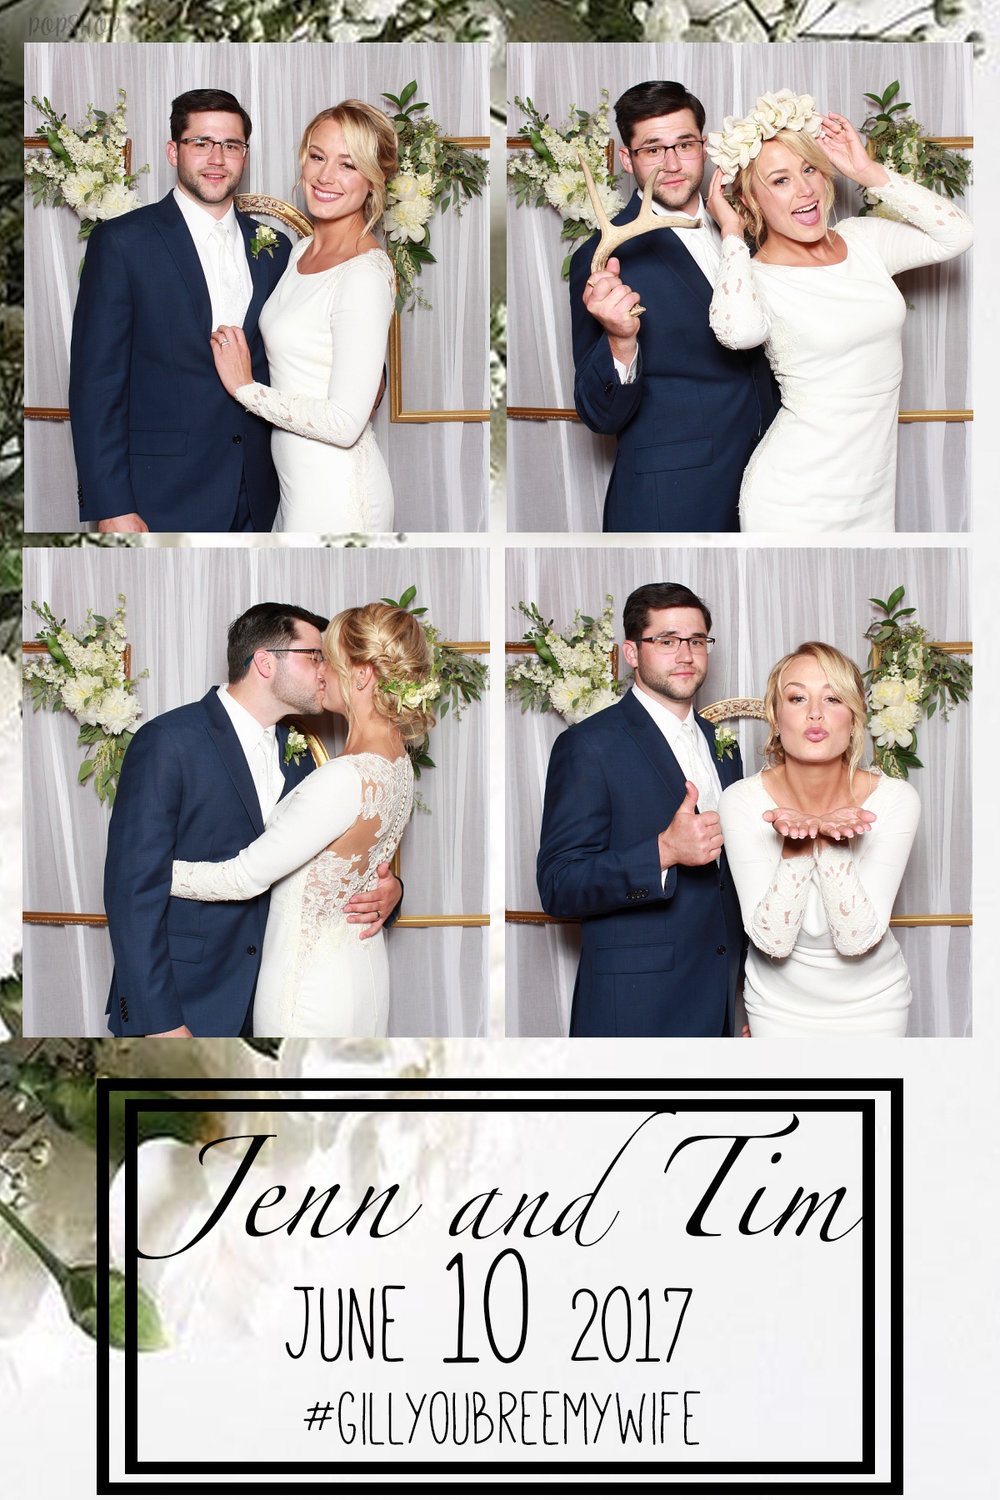 Tim and Jenn! June 10th 2017